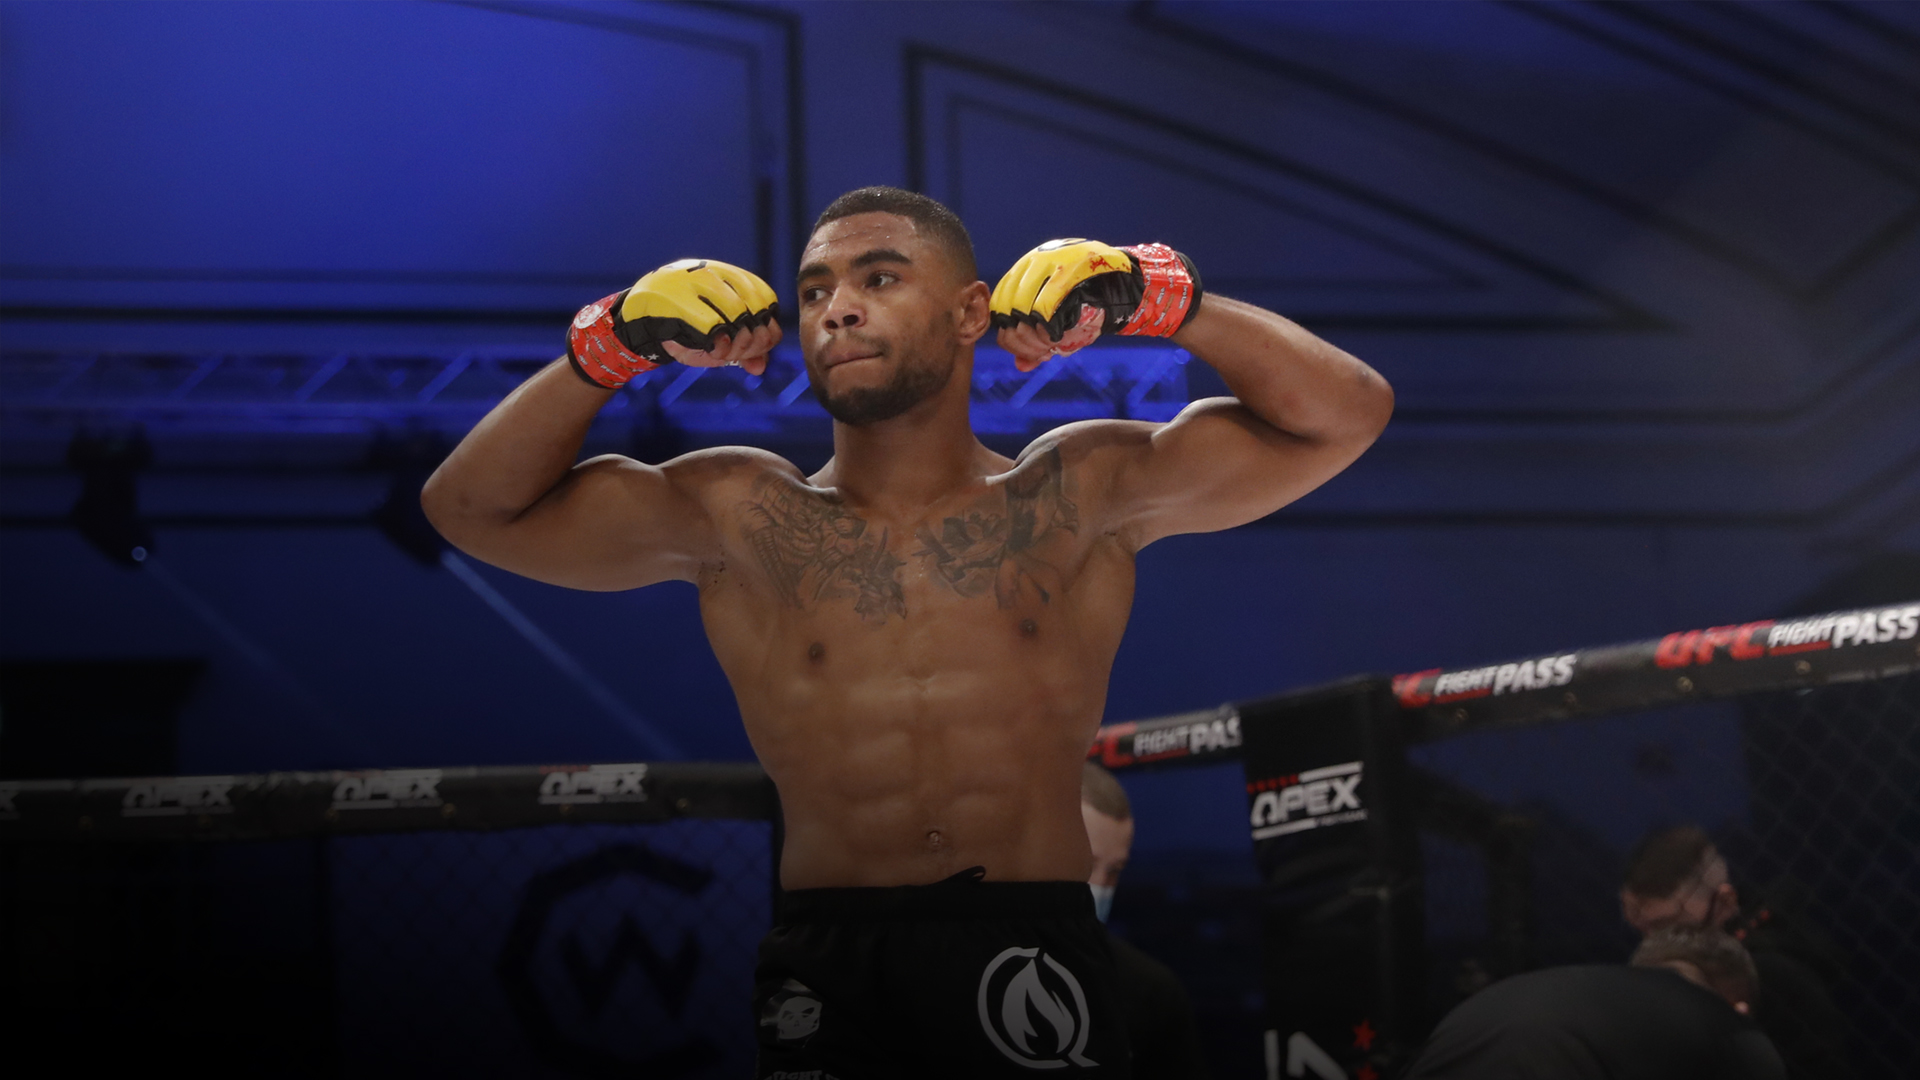 Morgan Charriere poses after a victory in Cage Warriors